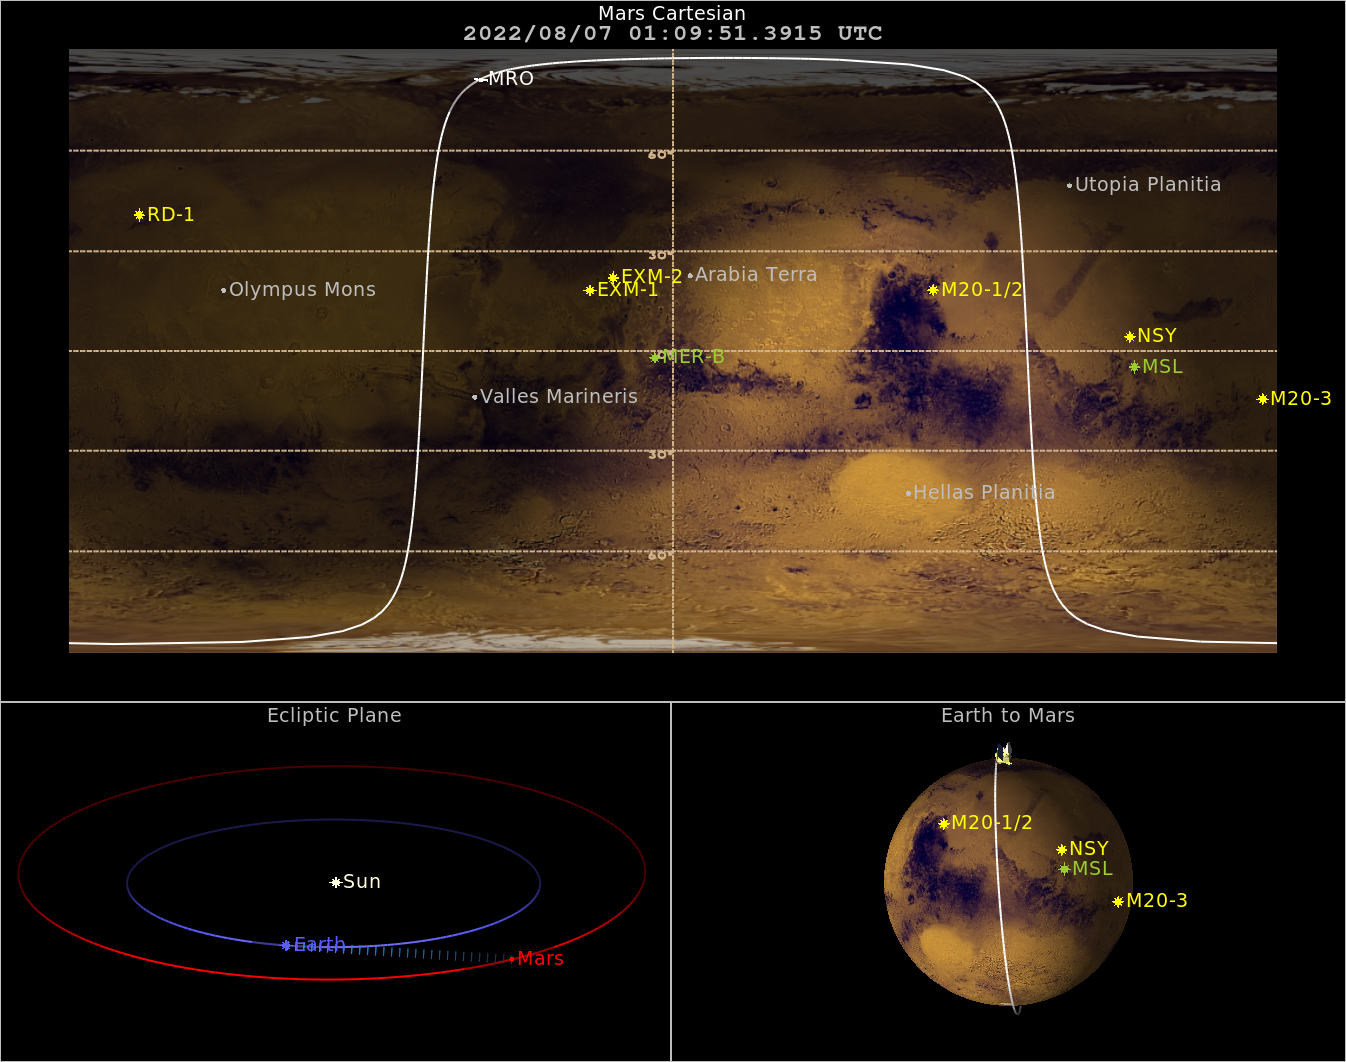 Mars Reconnaissance Orbiter's current position orbiting Mars.